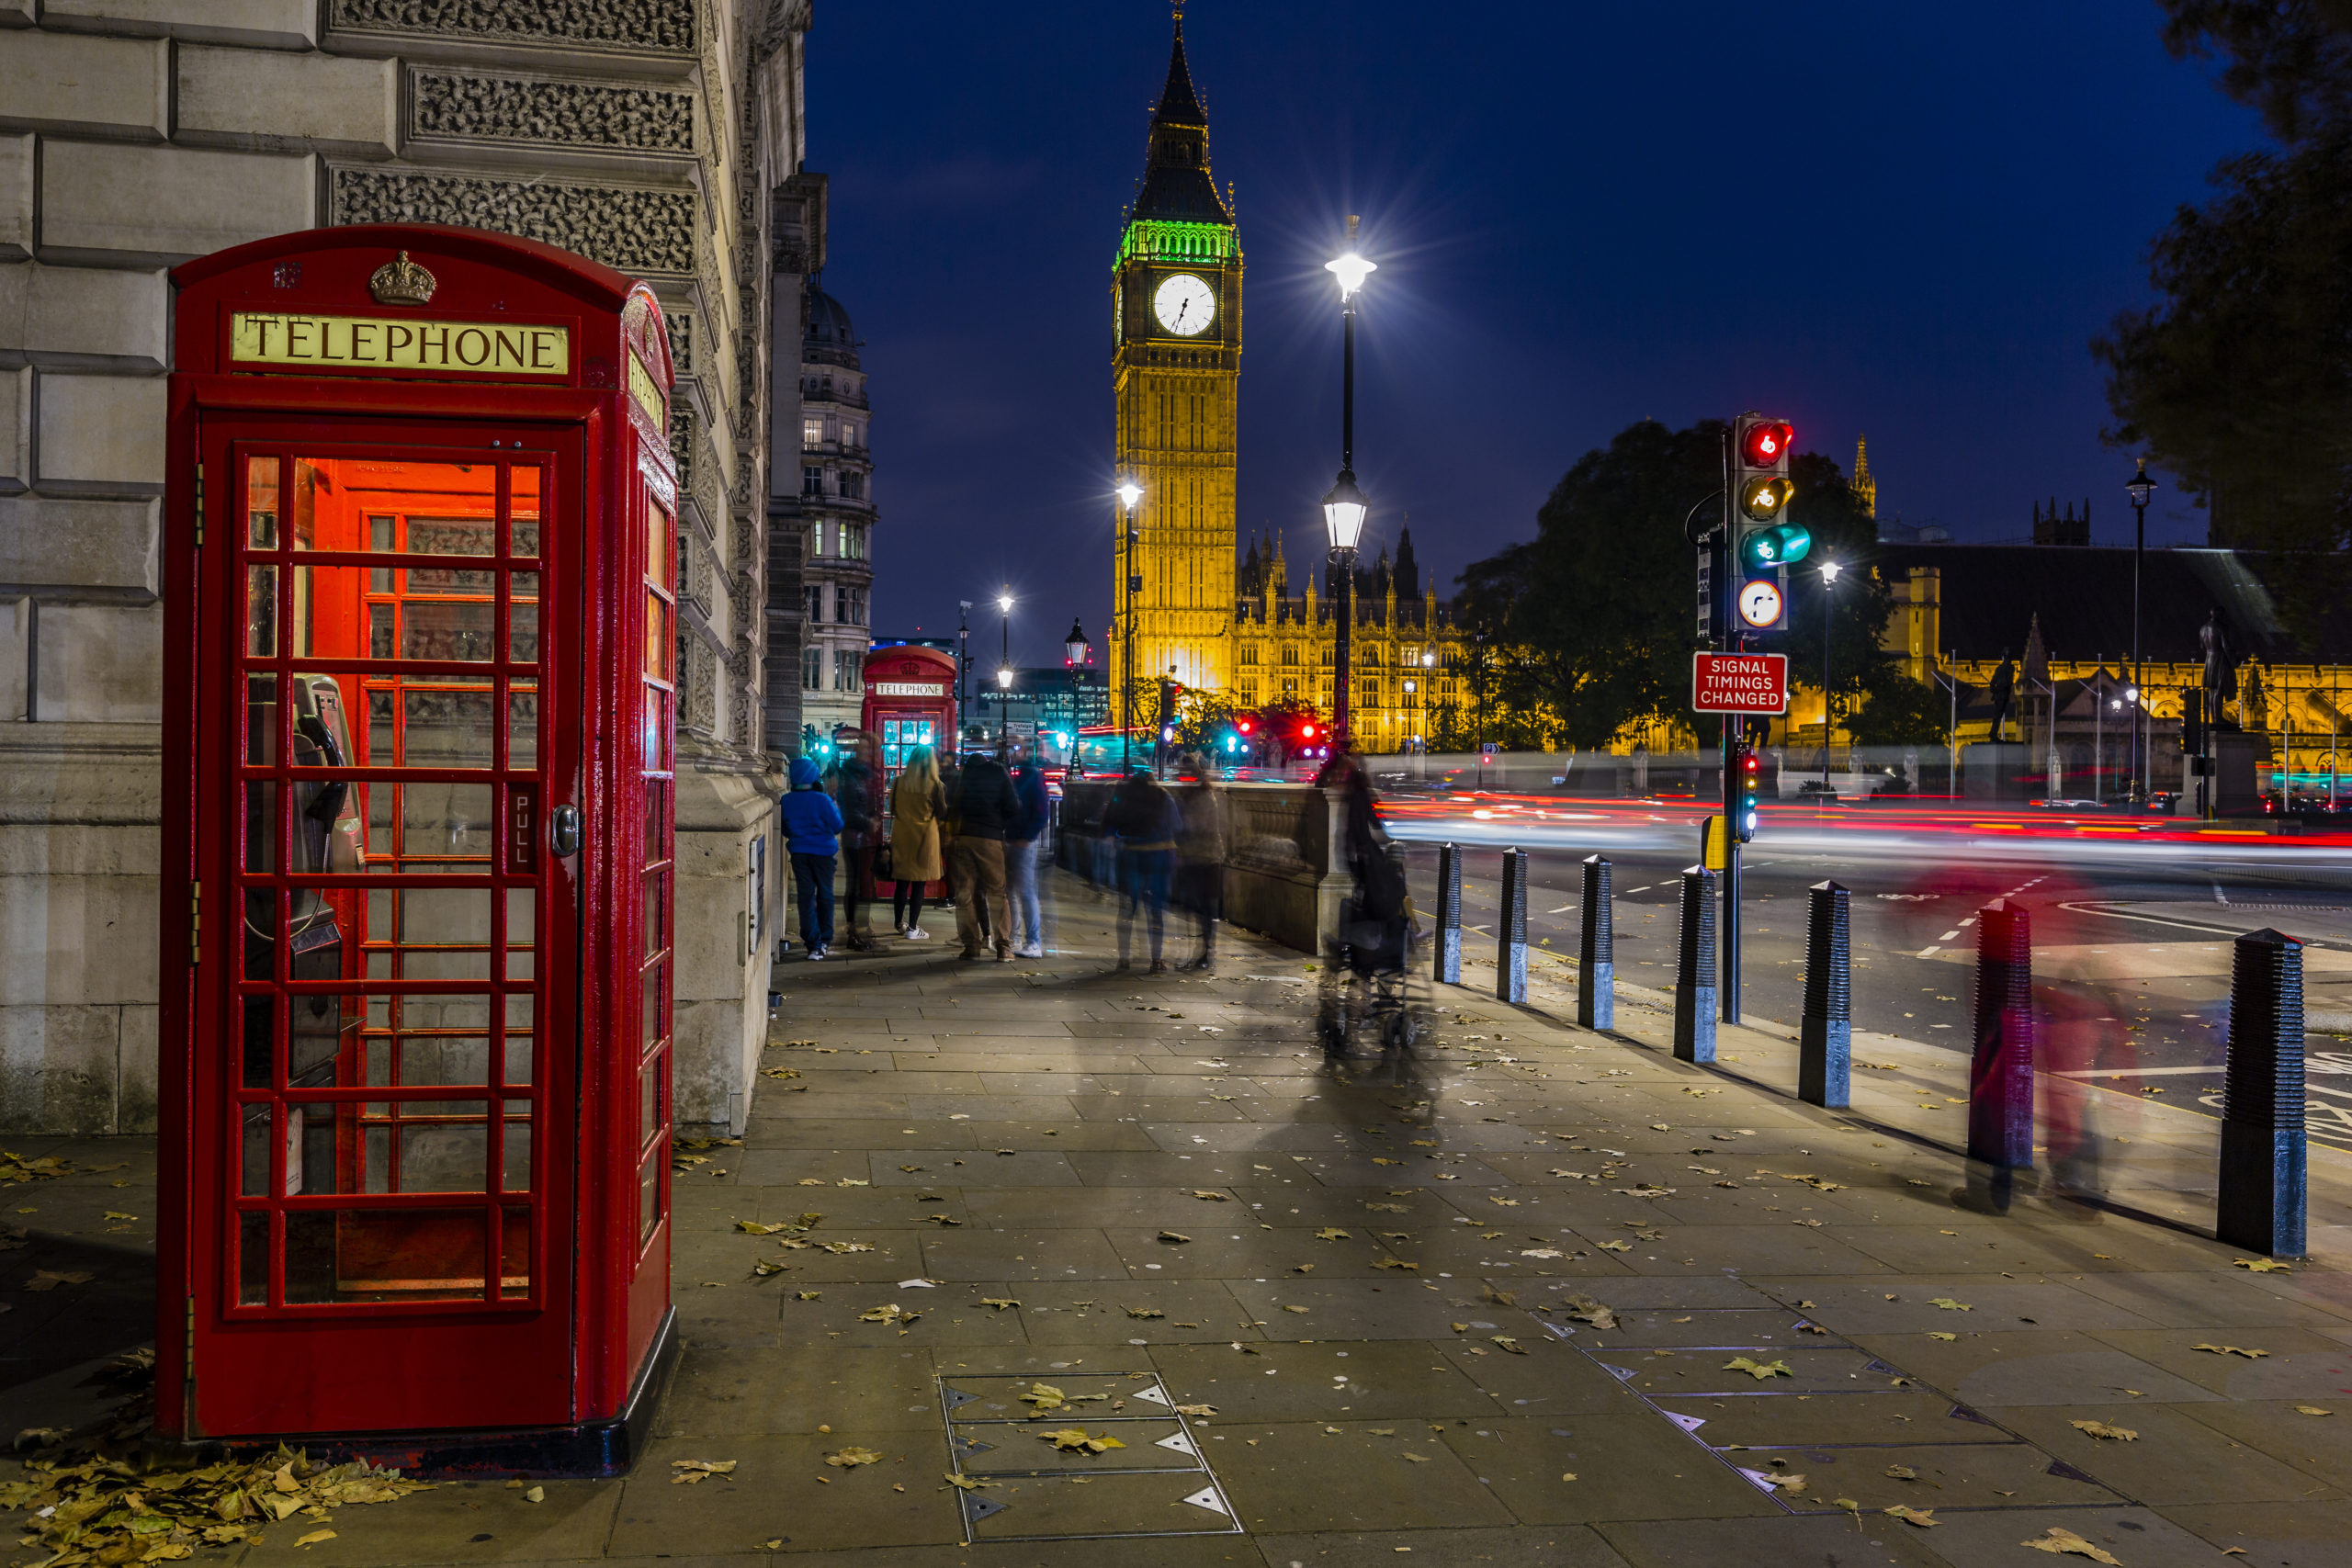 Red telephone box on street in London, contact us